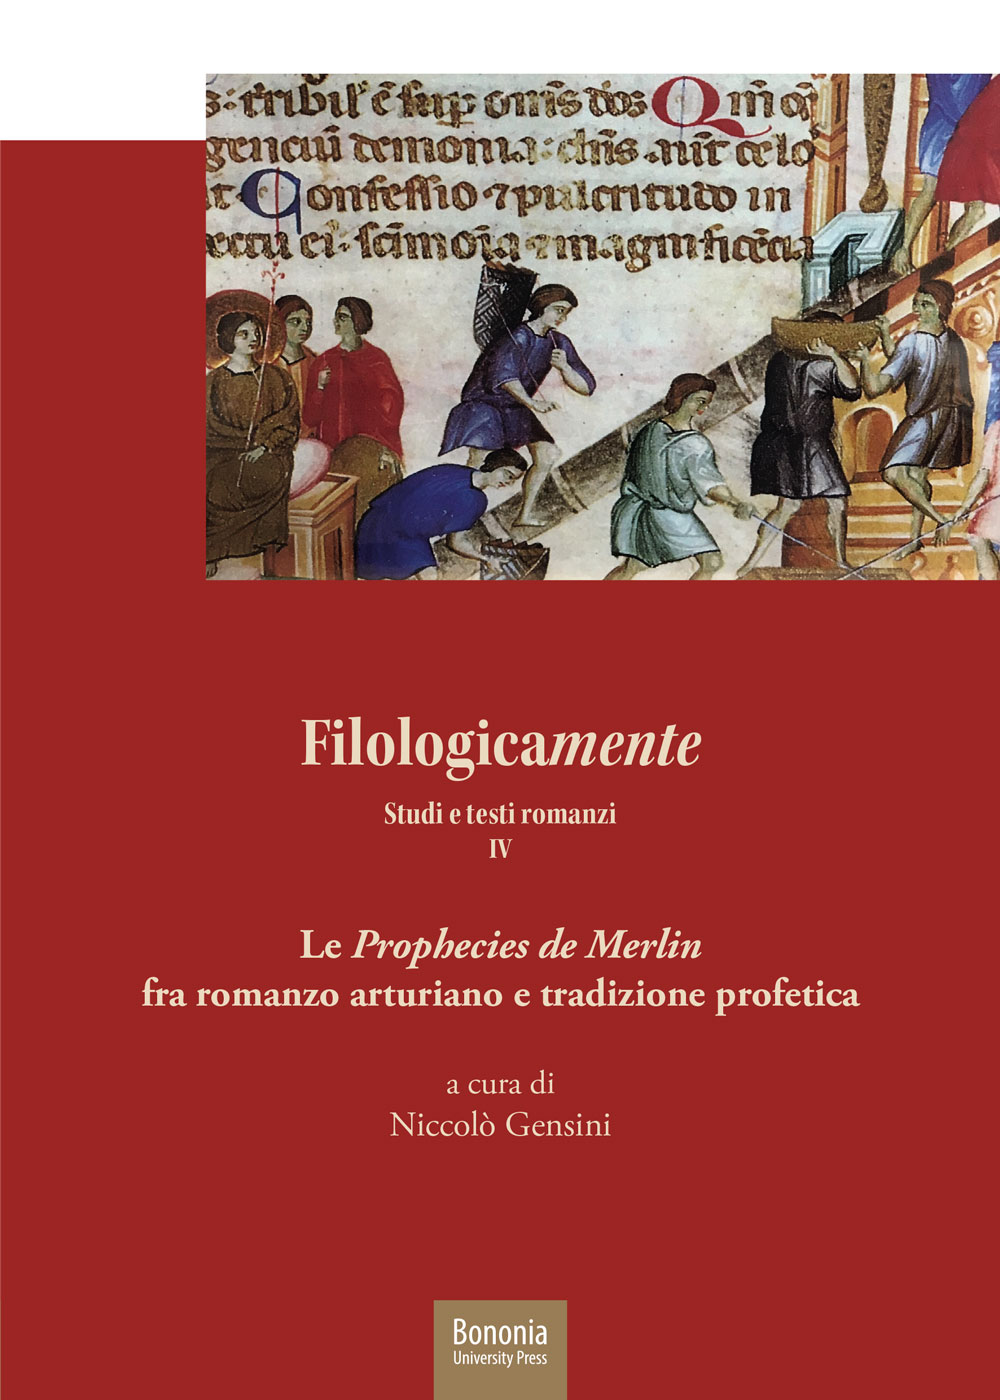 Filologicamente. Studi e testi romanzi IV - Bononia University Press